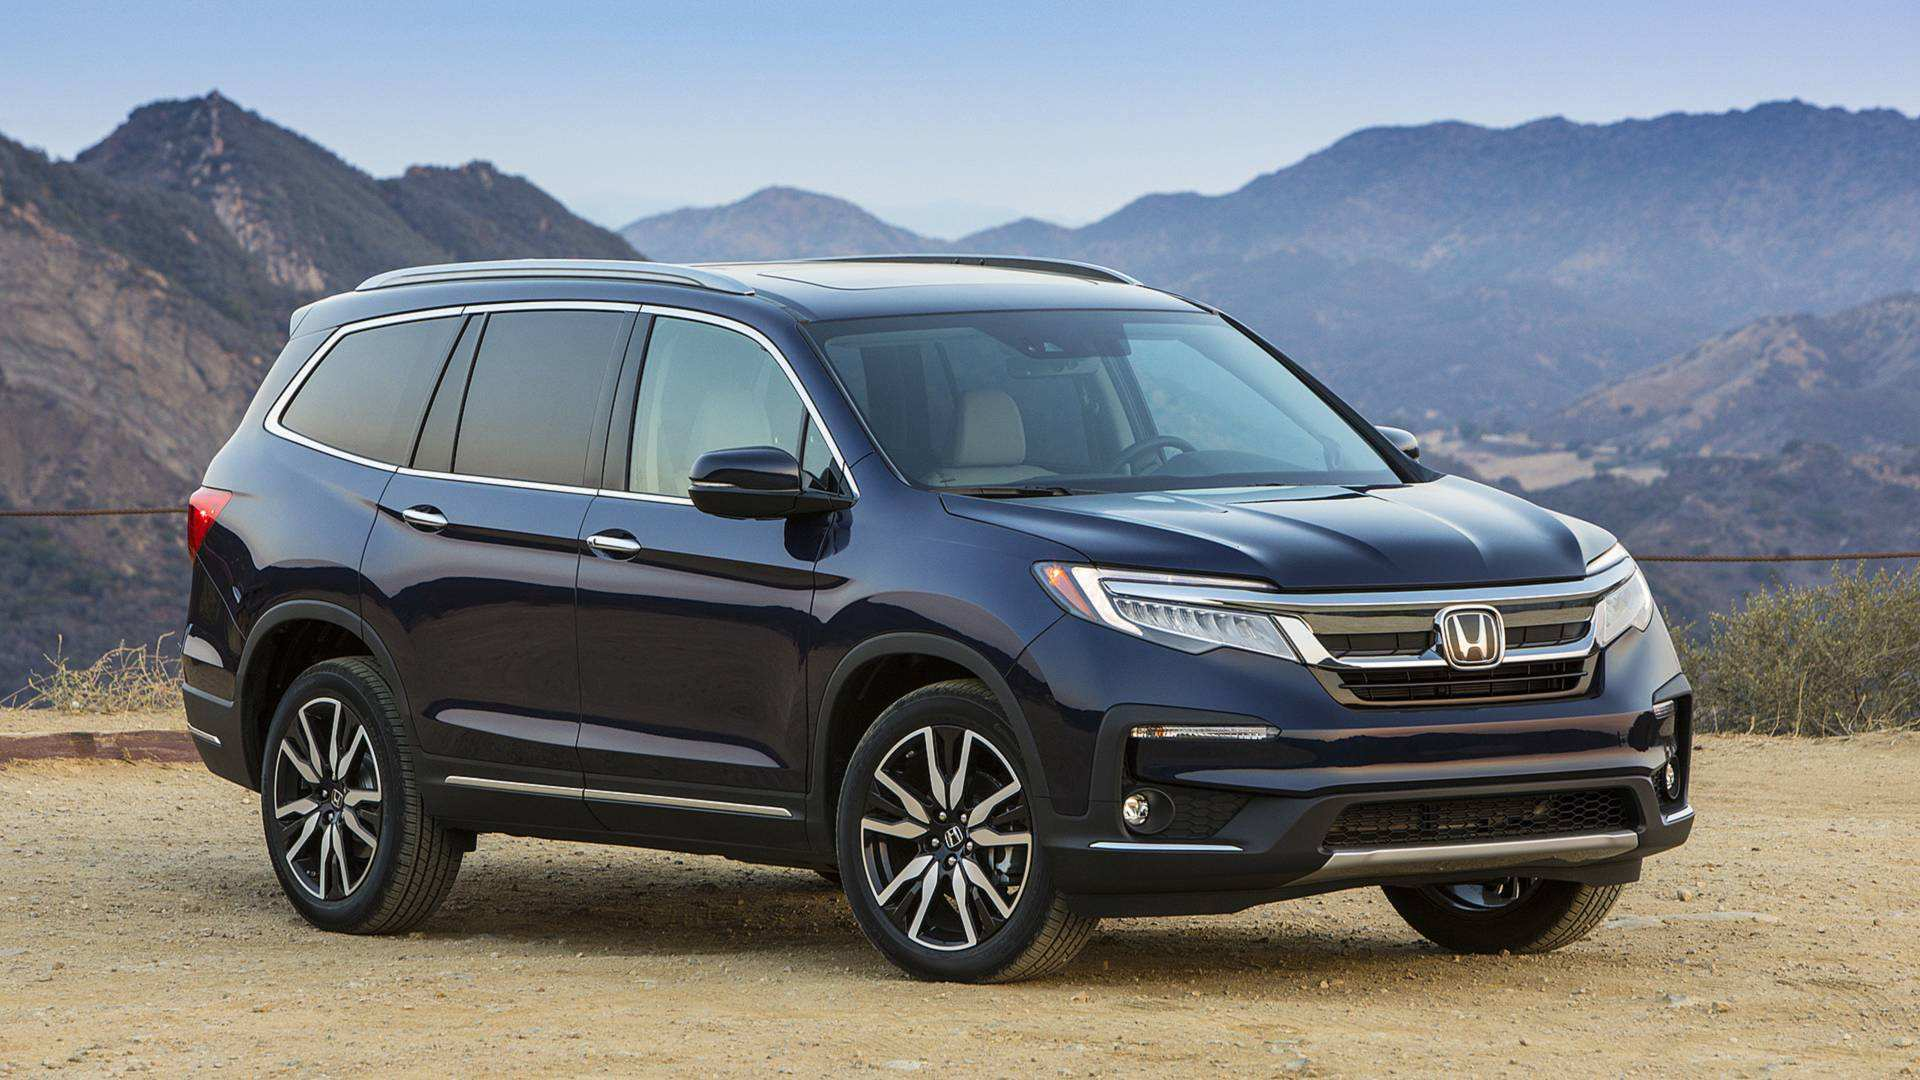 96 All New 2019 Honda Pilot Spy Photos Redesign